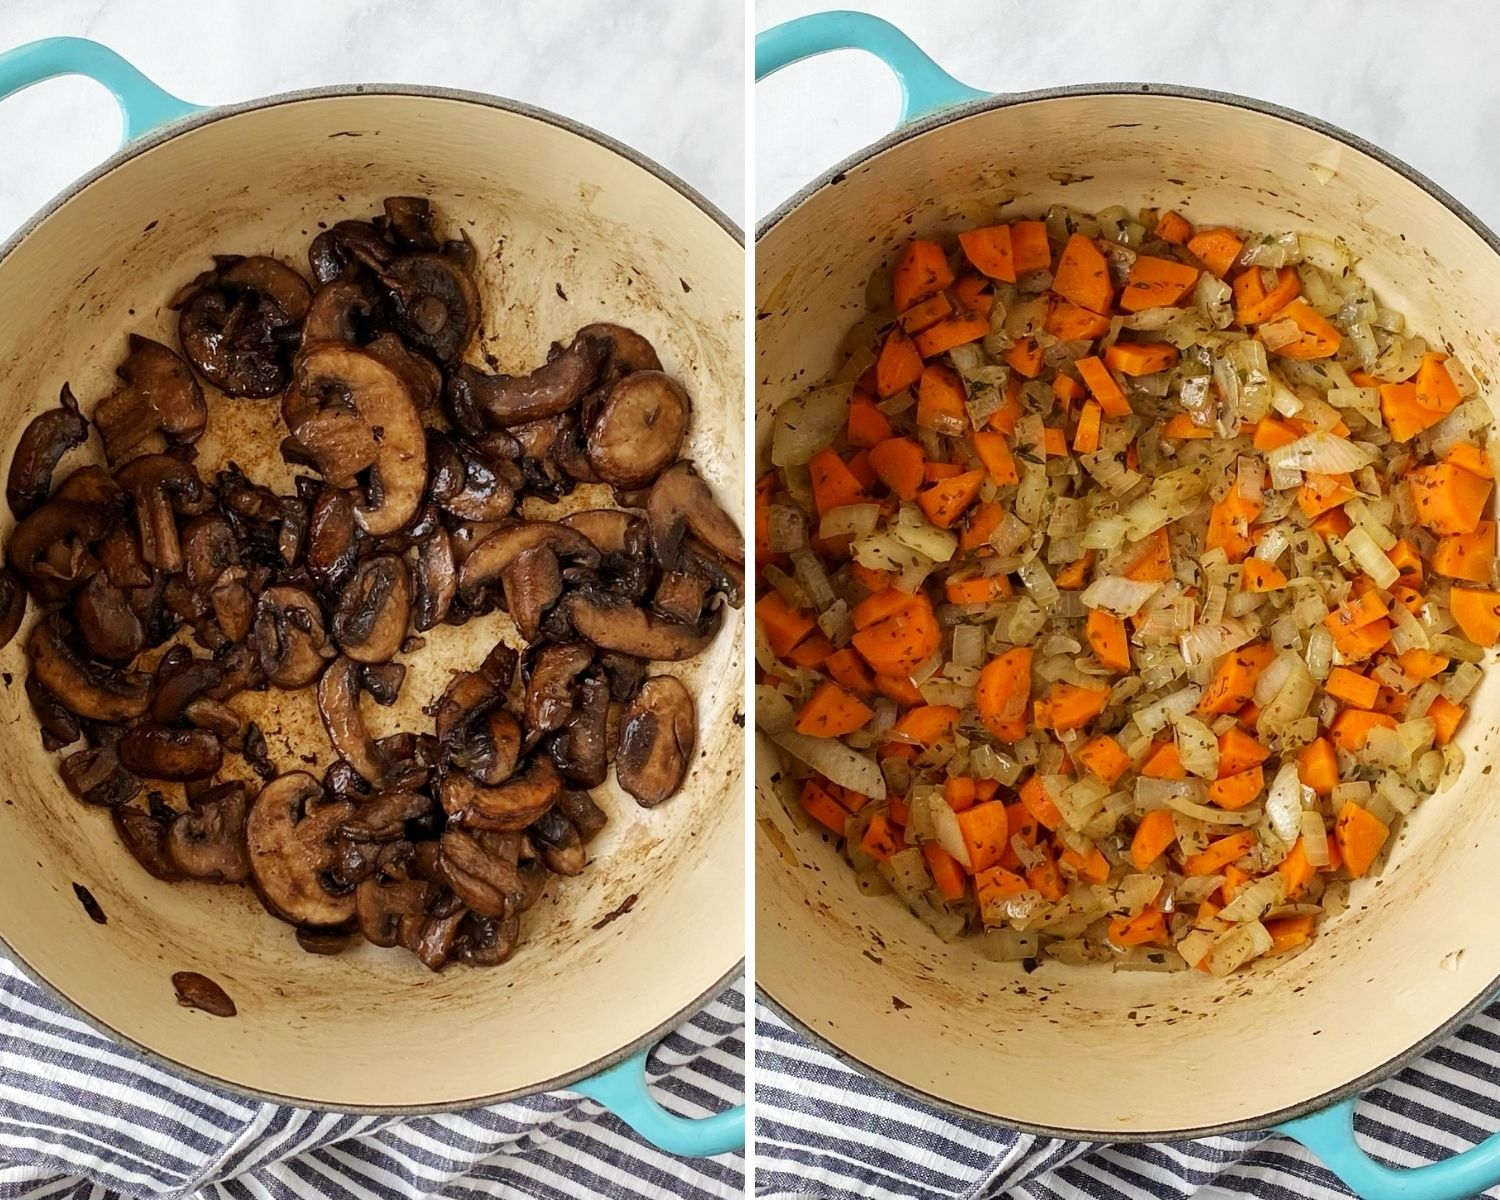 pot of sauteed mushrooms and pot of sauteed onions and carrots